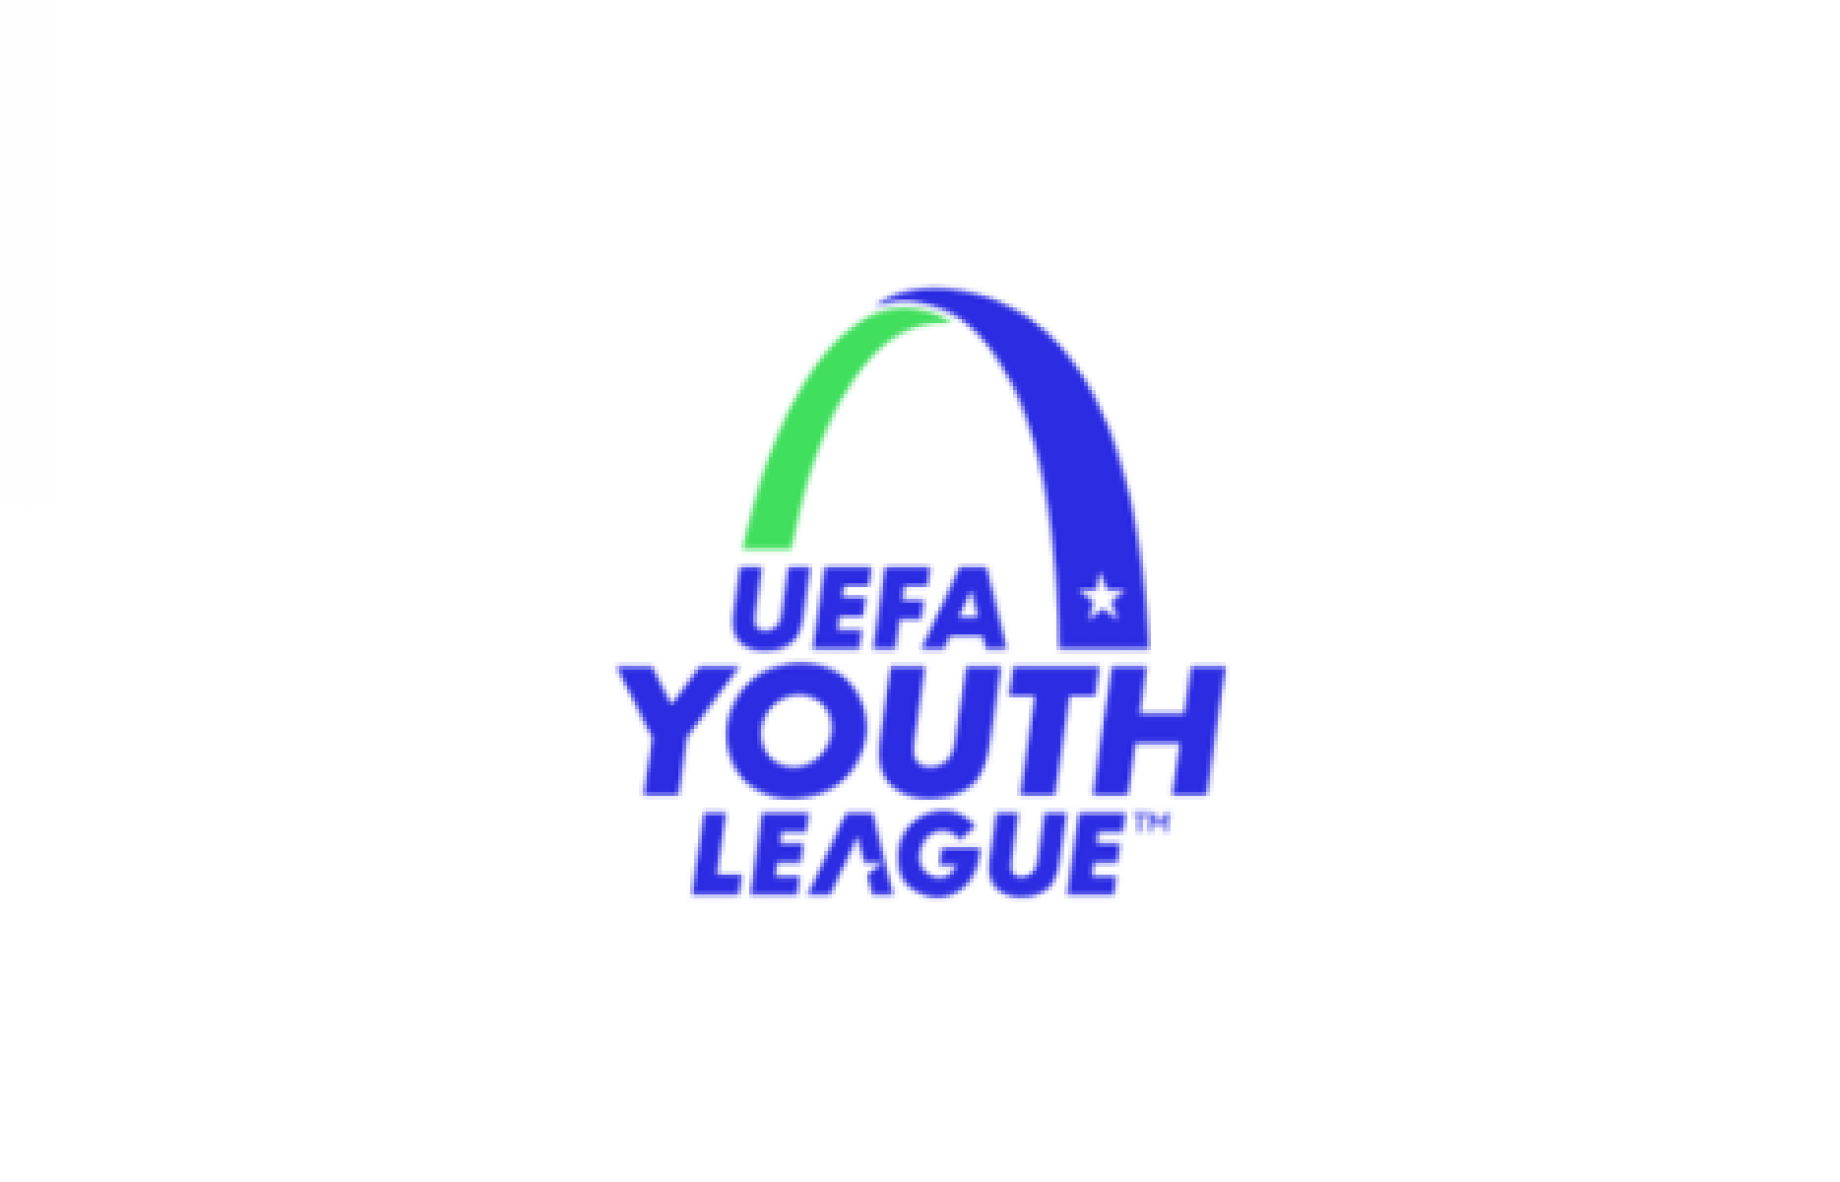 UEFA_Youth_League.png